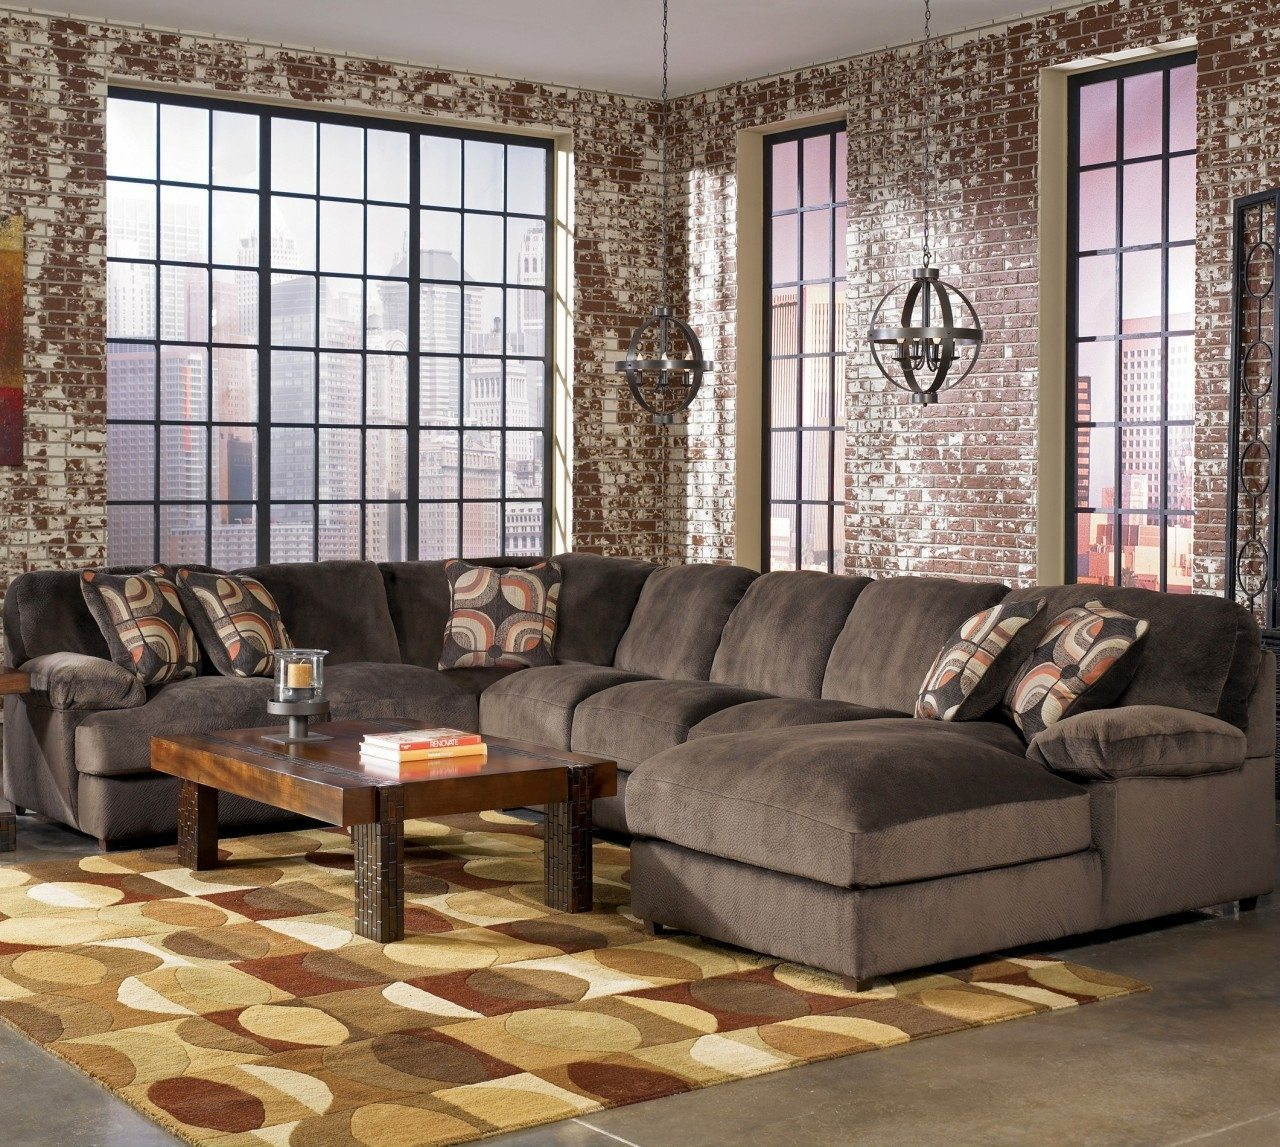 Large Sectional Sofas | Ashley Furniture Sectional | Modular Sofa : sectional couch ashley furniture - Sectionals, Sofas & Couches